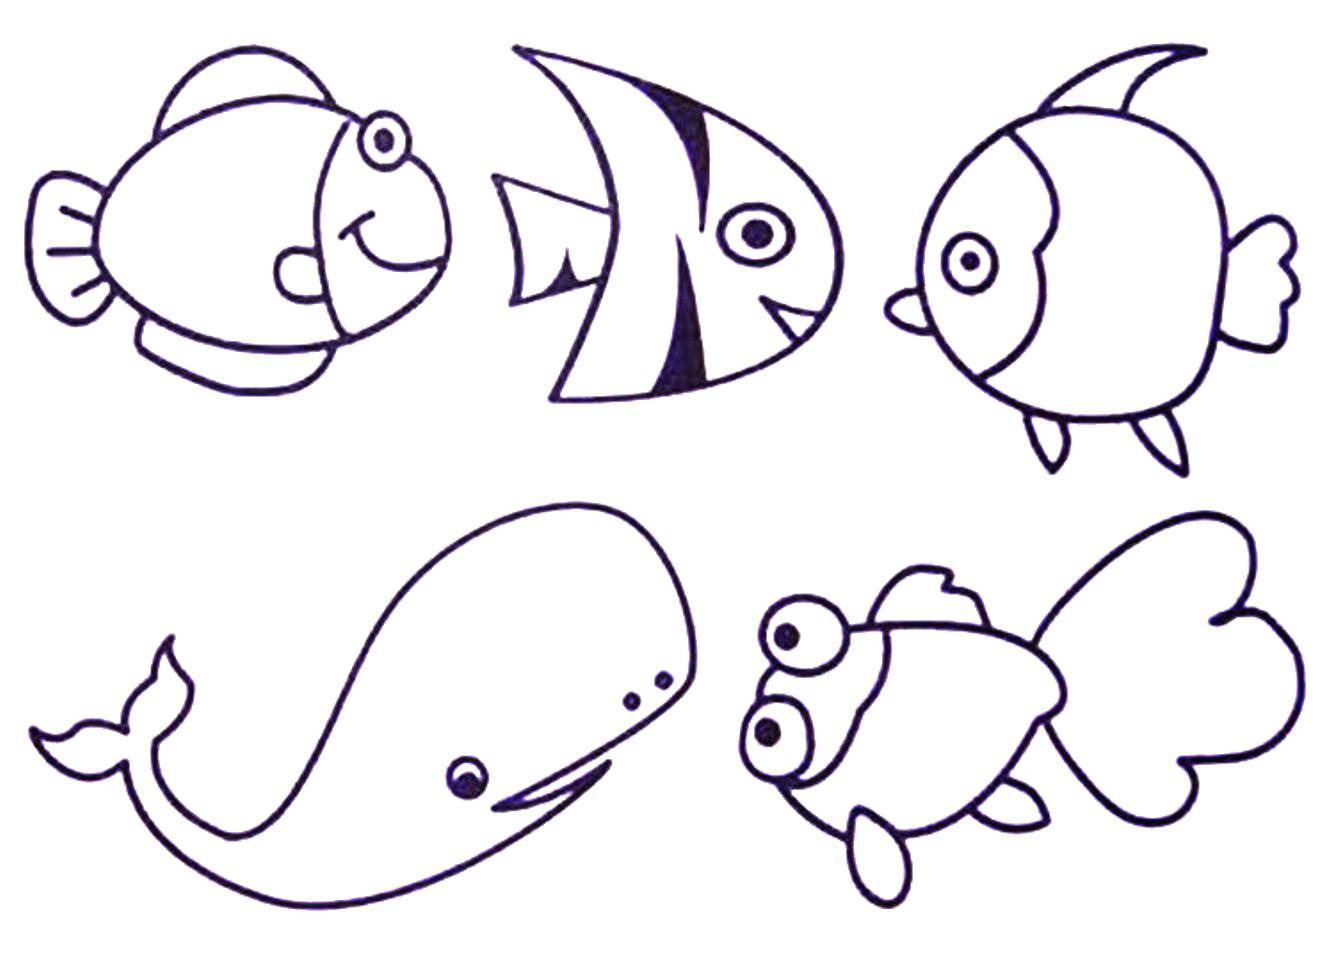 Coloring sheet marine animals Download Dima, table.  Print ,friendship,